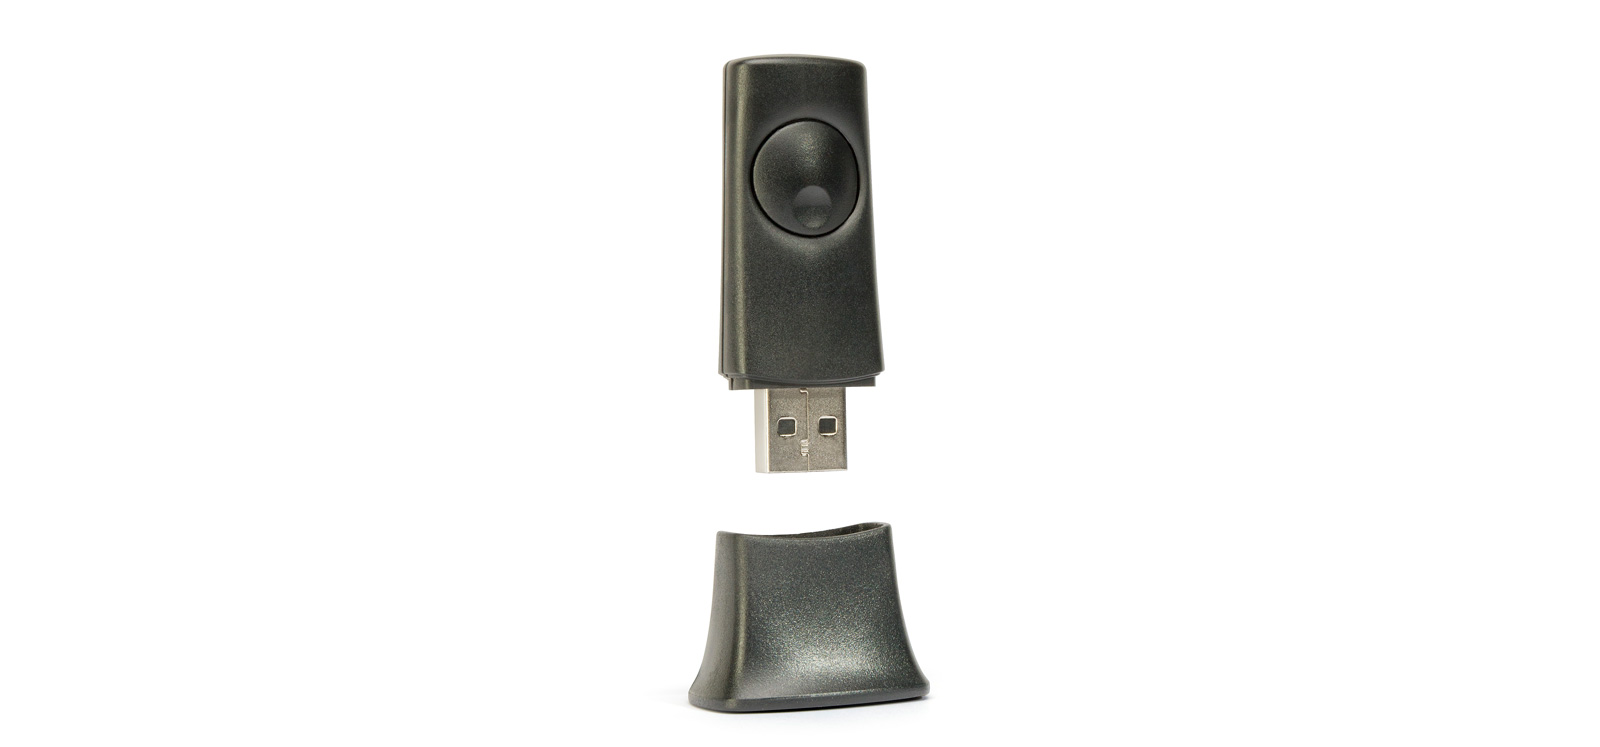 Bt100 Bluetooth Audio Receiver Cambridge Usb Dongle If Your Smartphone Or Tablet Supports The Aptx Enhancement Codec Can Support It As Well Which Is Featured On A Growing Number Of